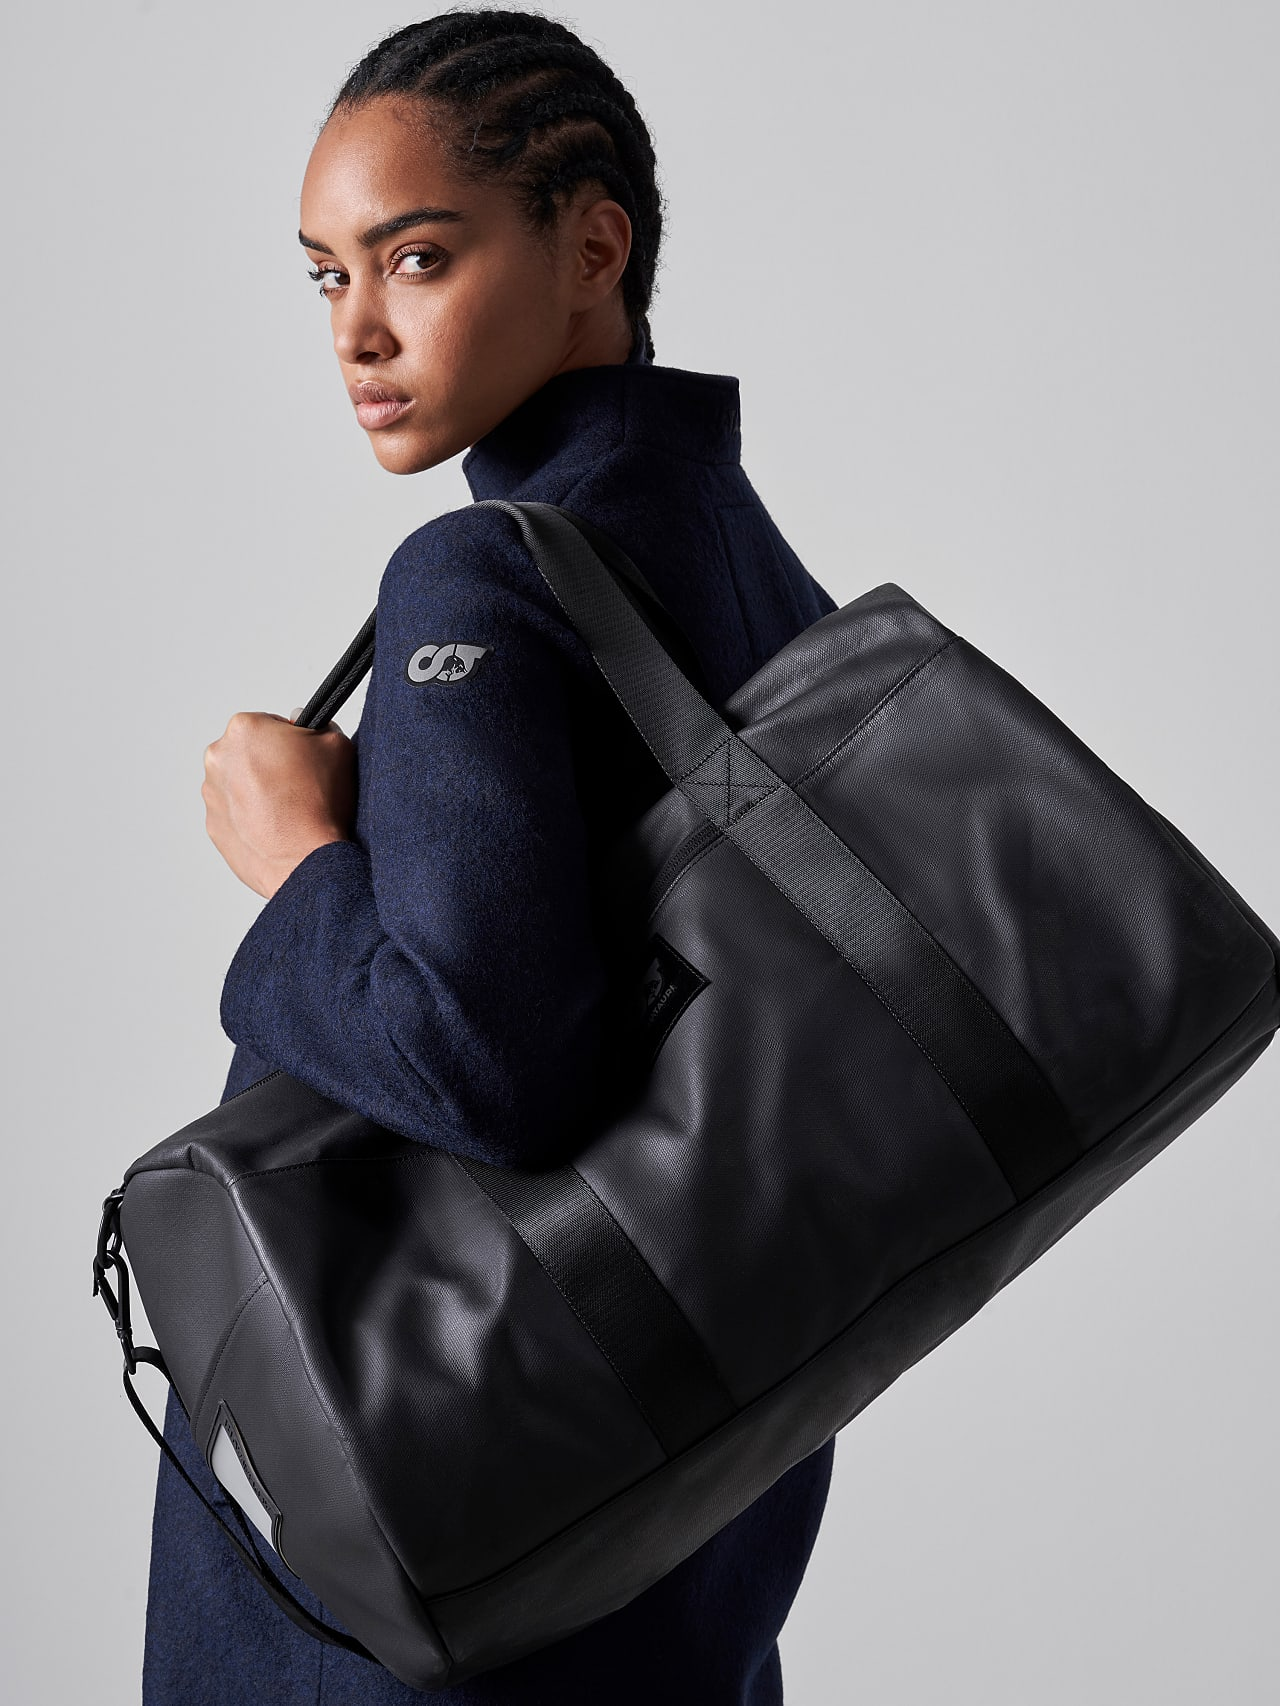 AWEE V4.Y5.02 Water-Repellent Duffle Bag dark grey / anthracite Right Alpha Tauri